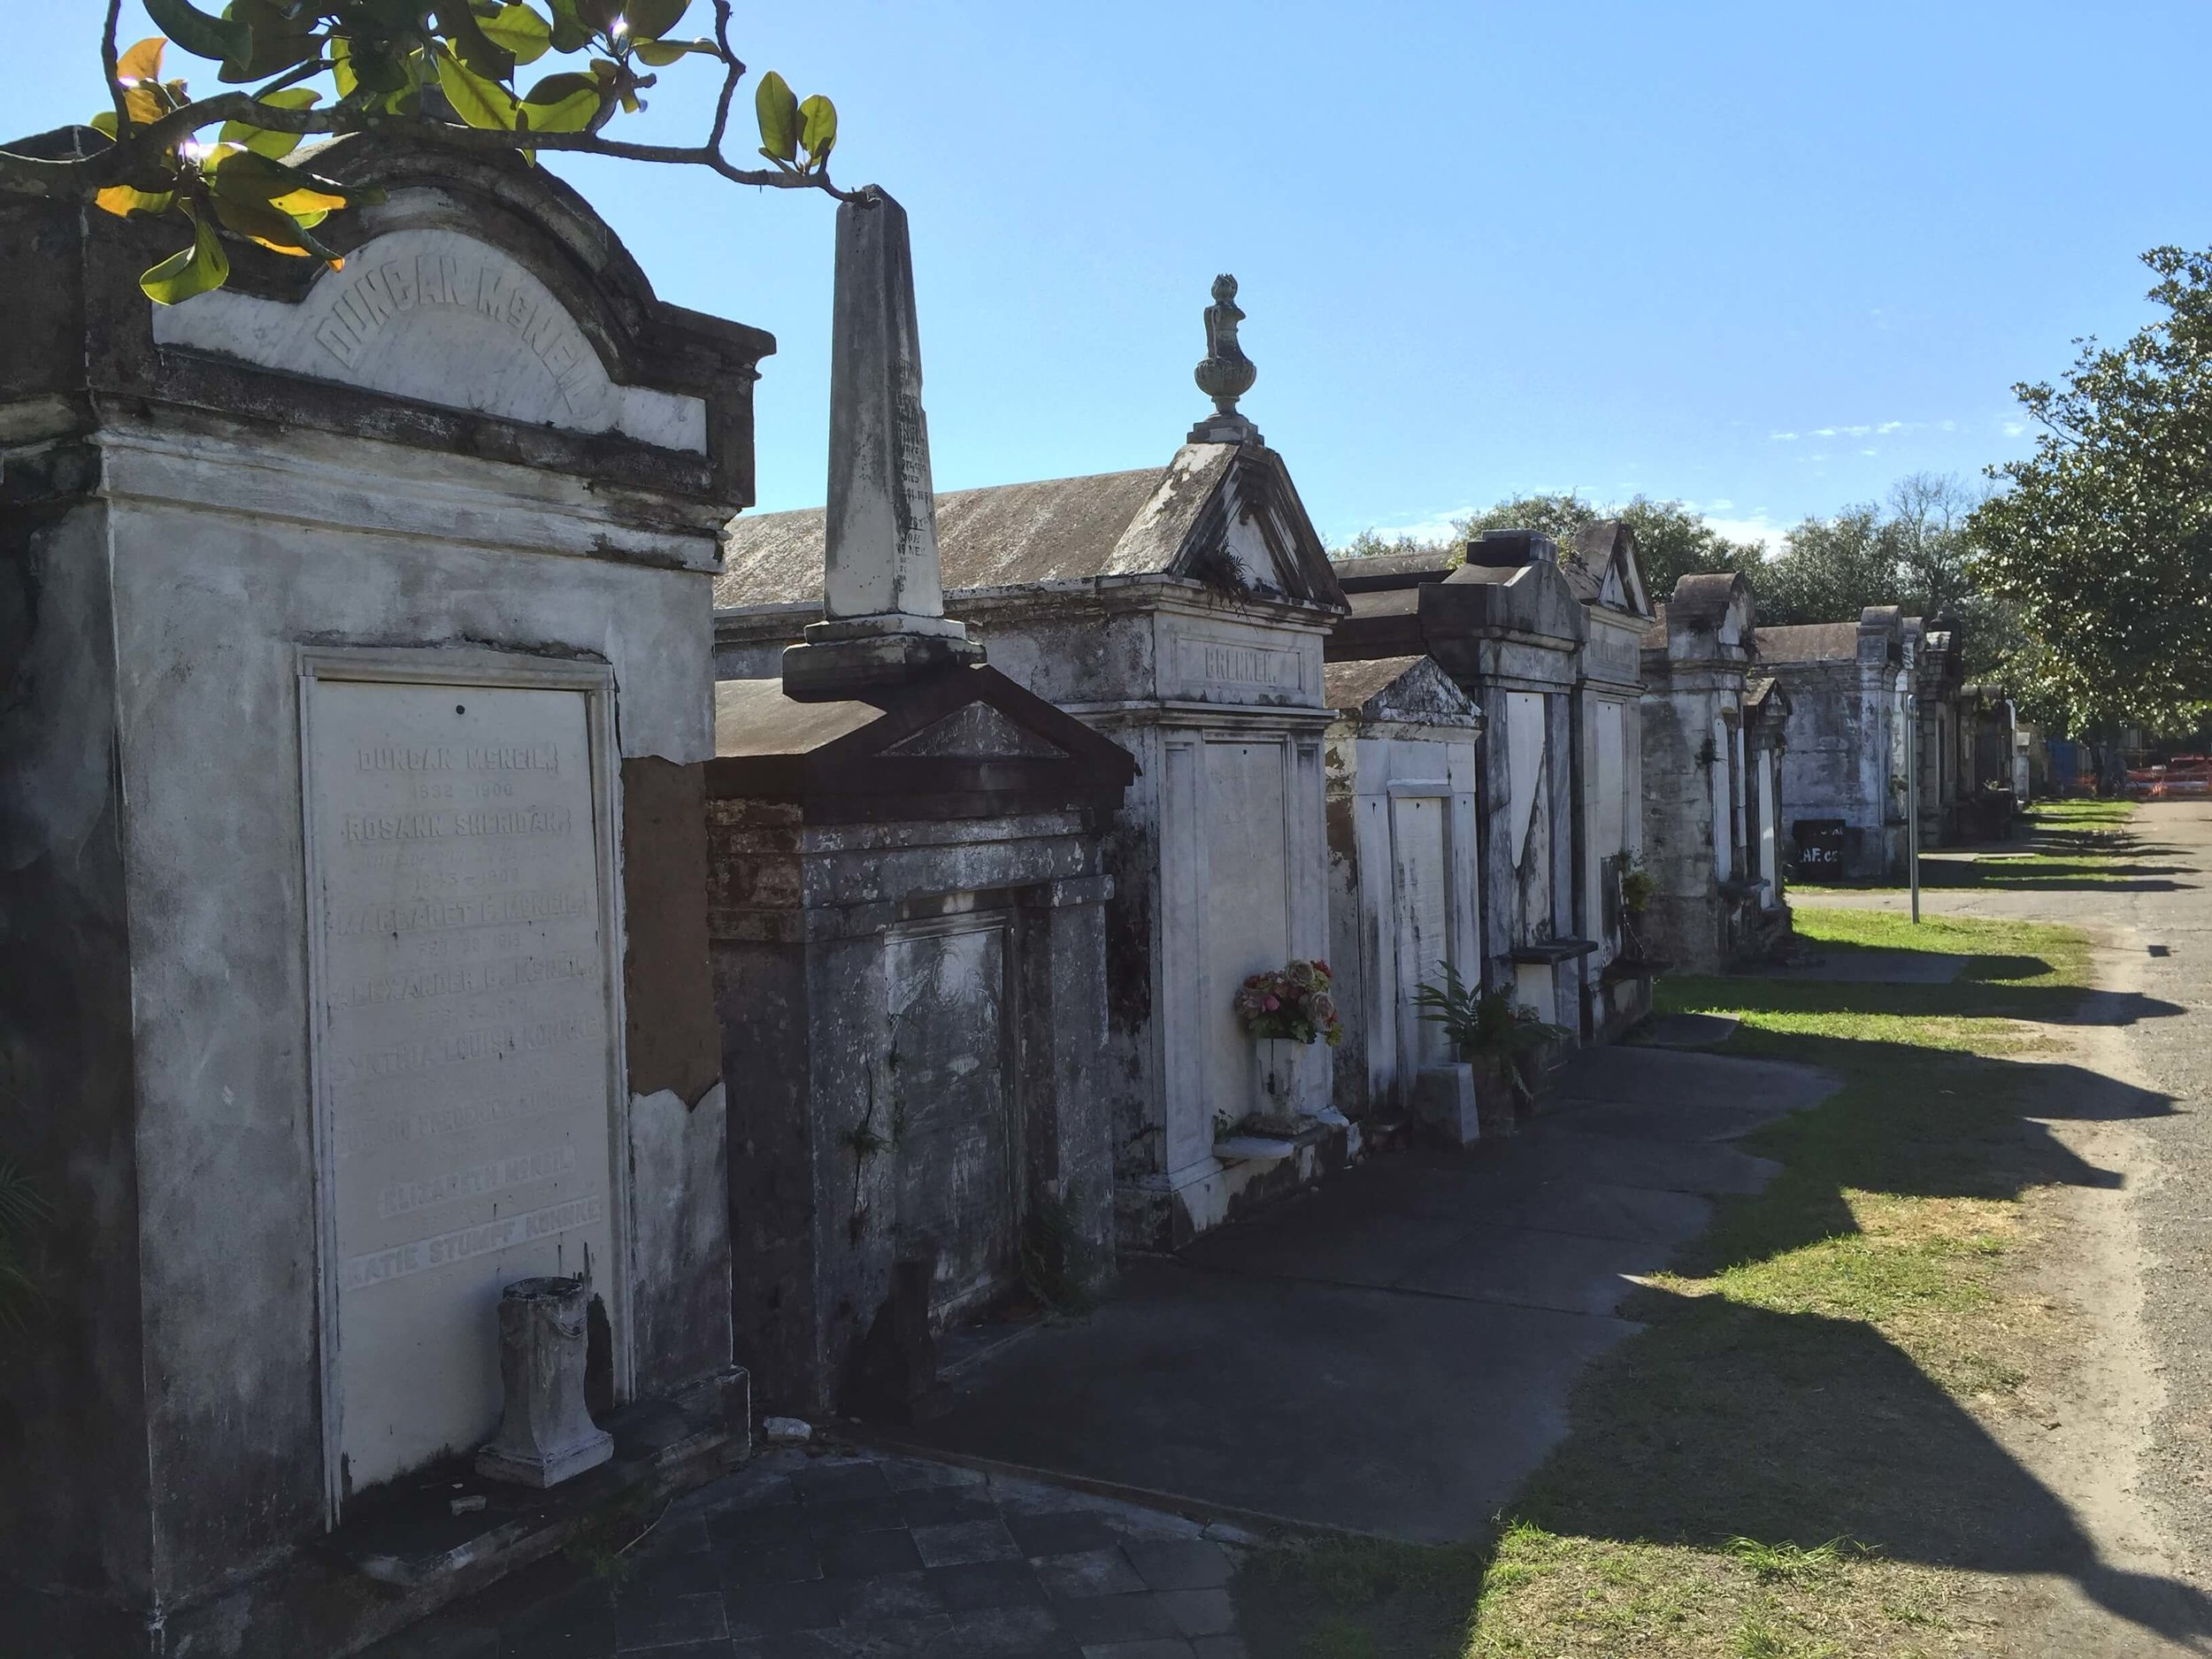 Lafayette Cemetery #1 in New Orleans